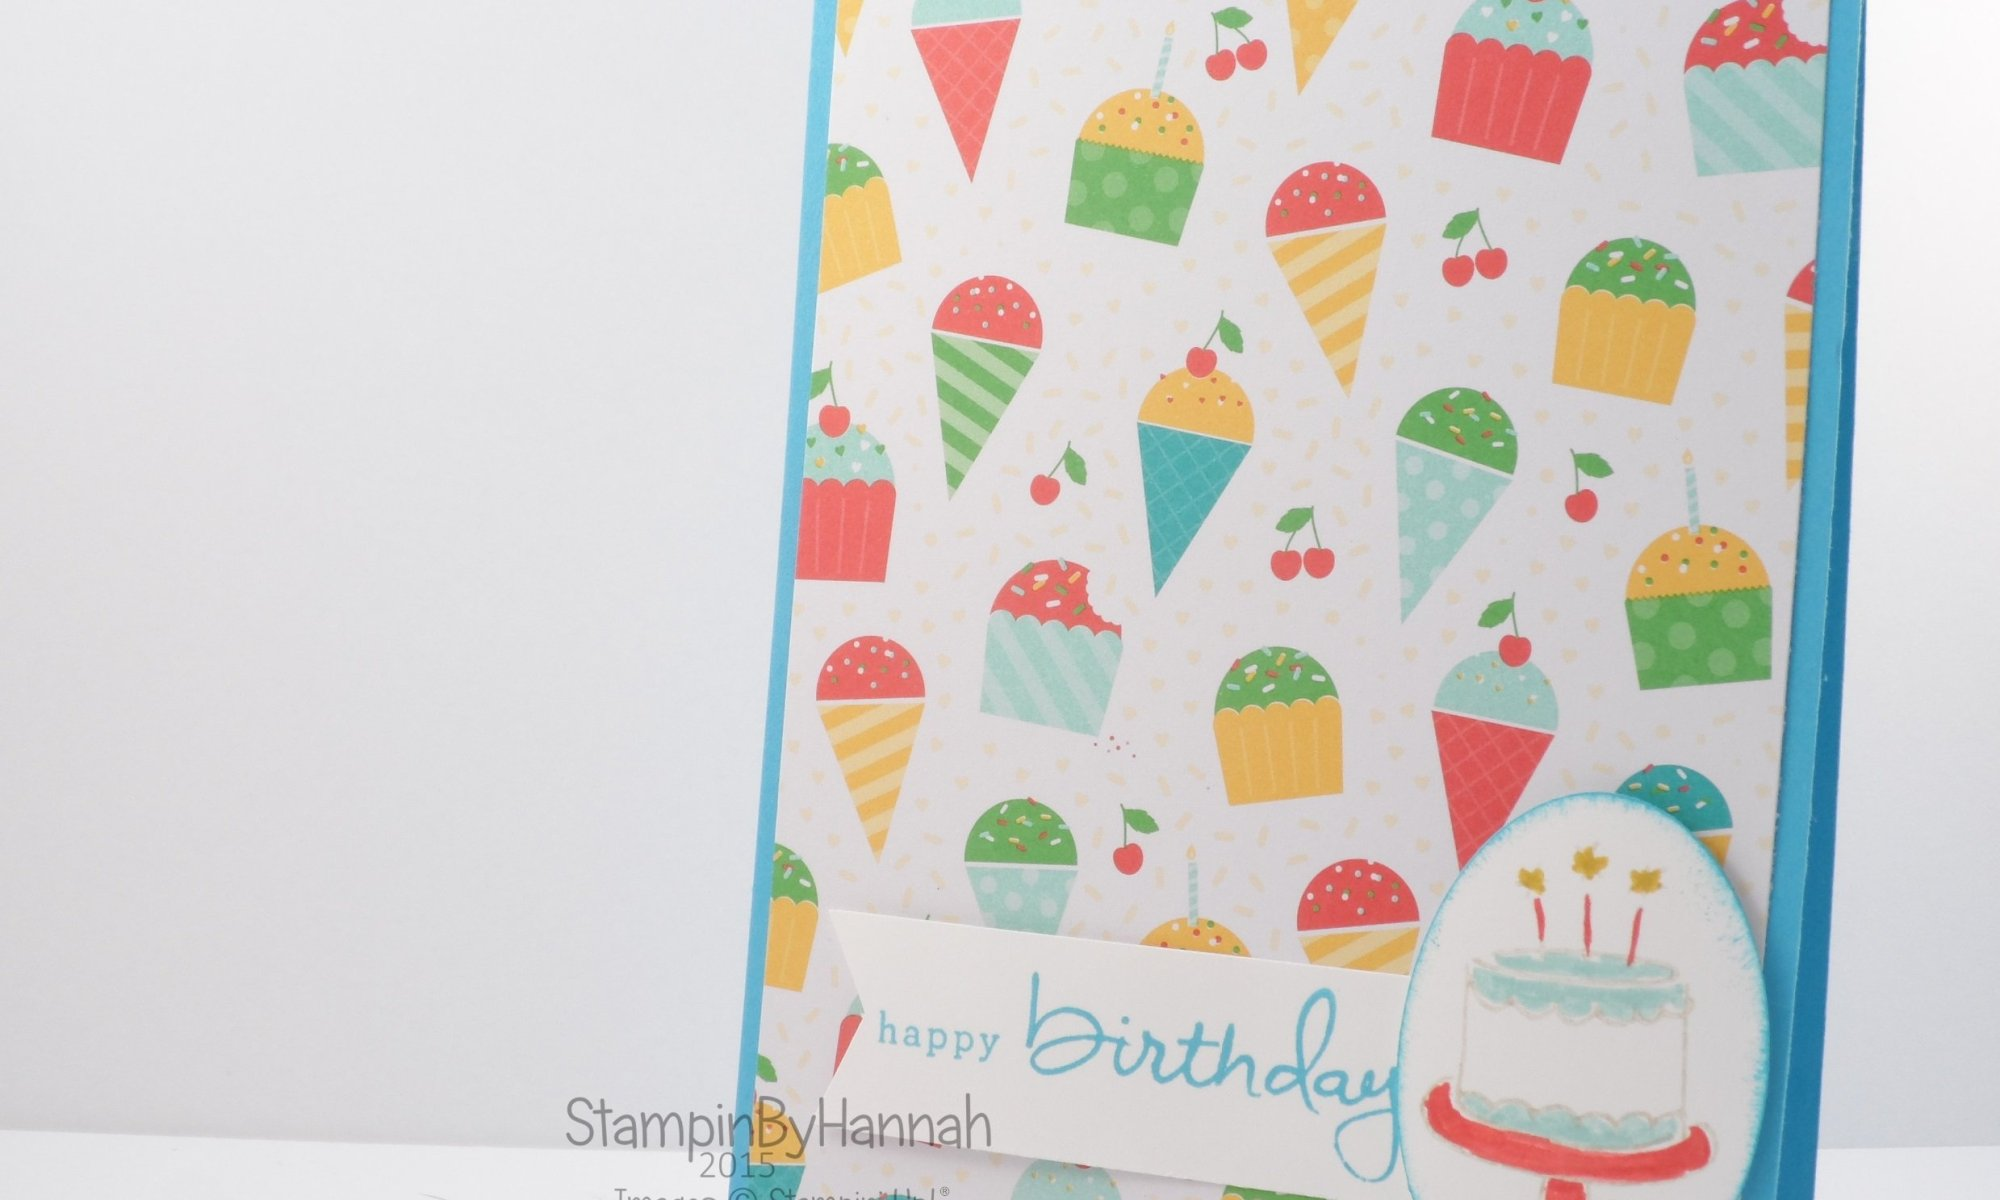 Stampin' Up! UK Cherry on Top Endless Birthday Wishes Birthday card